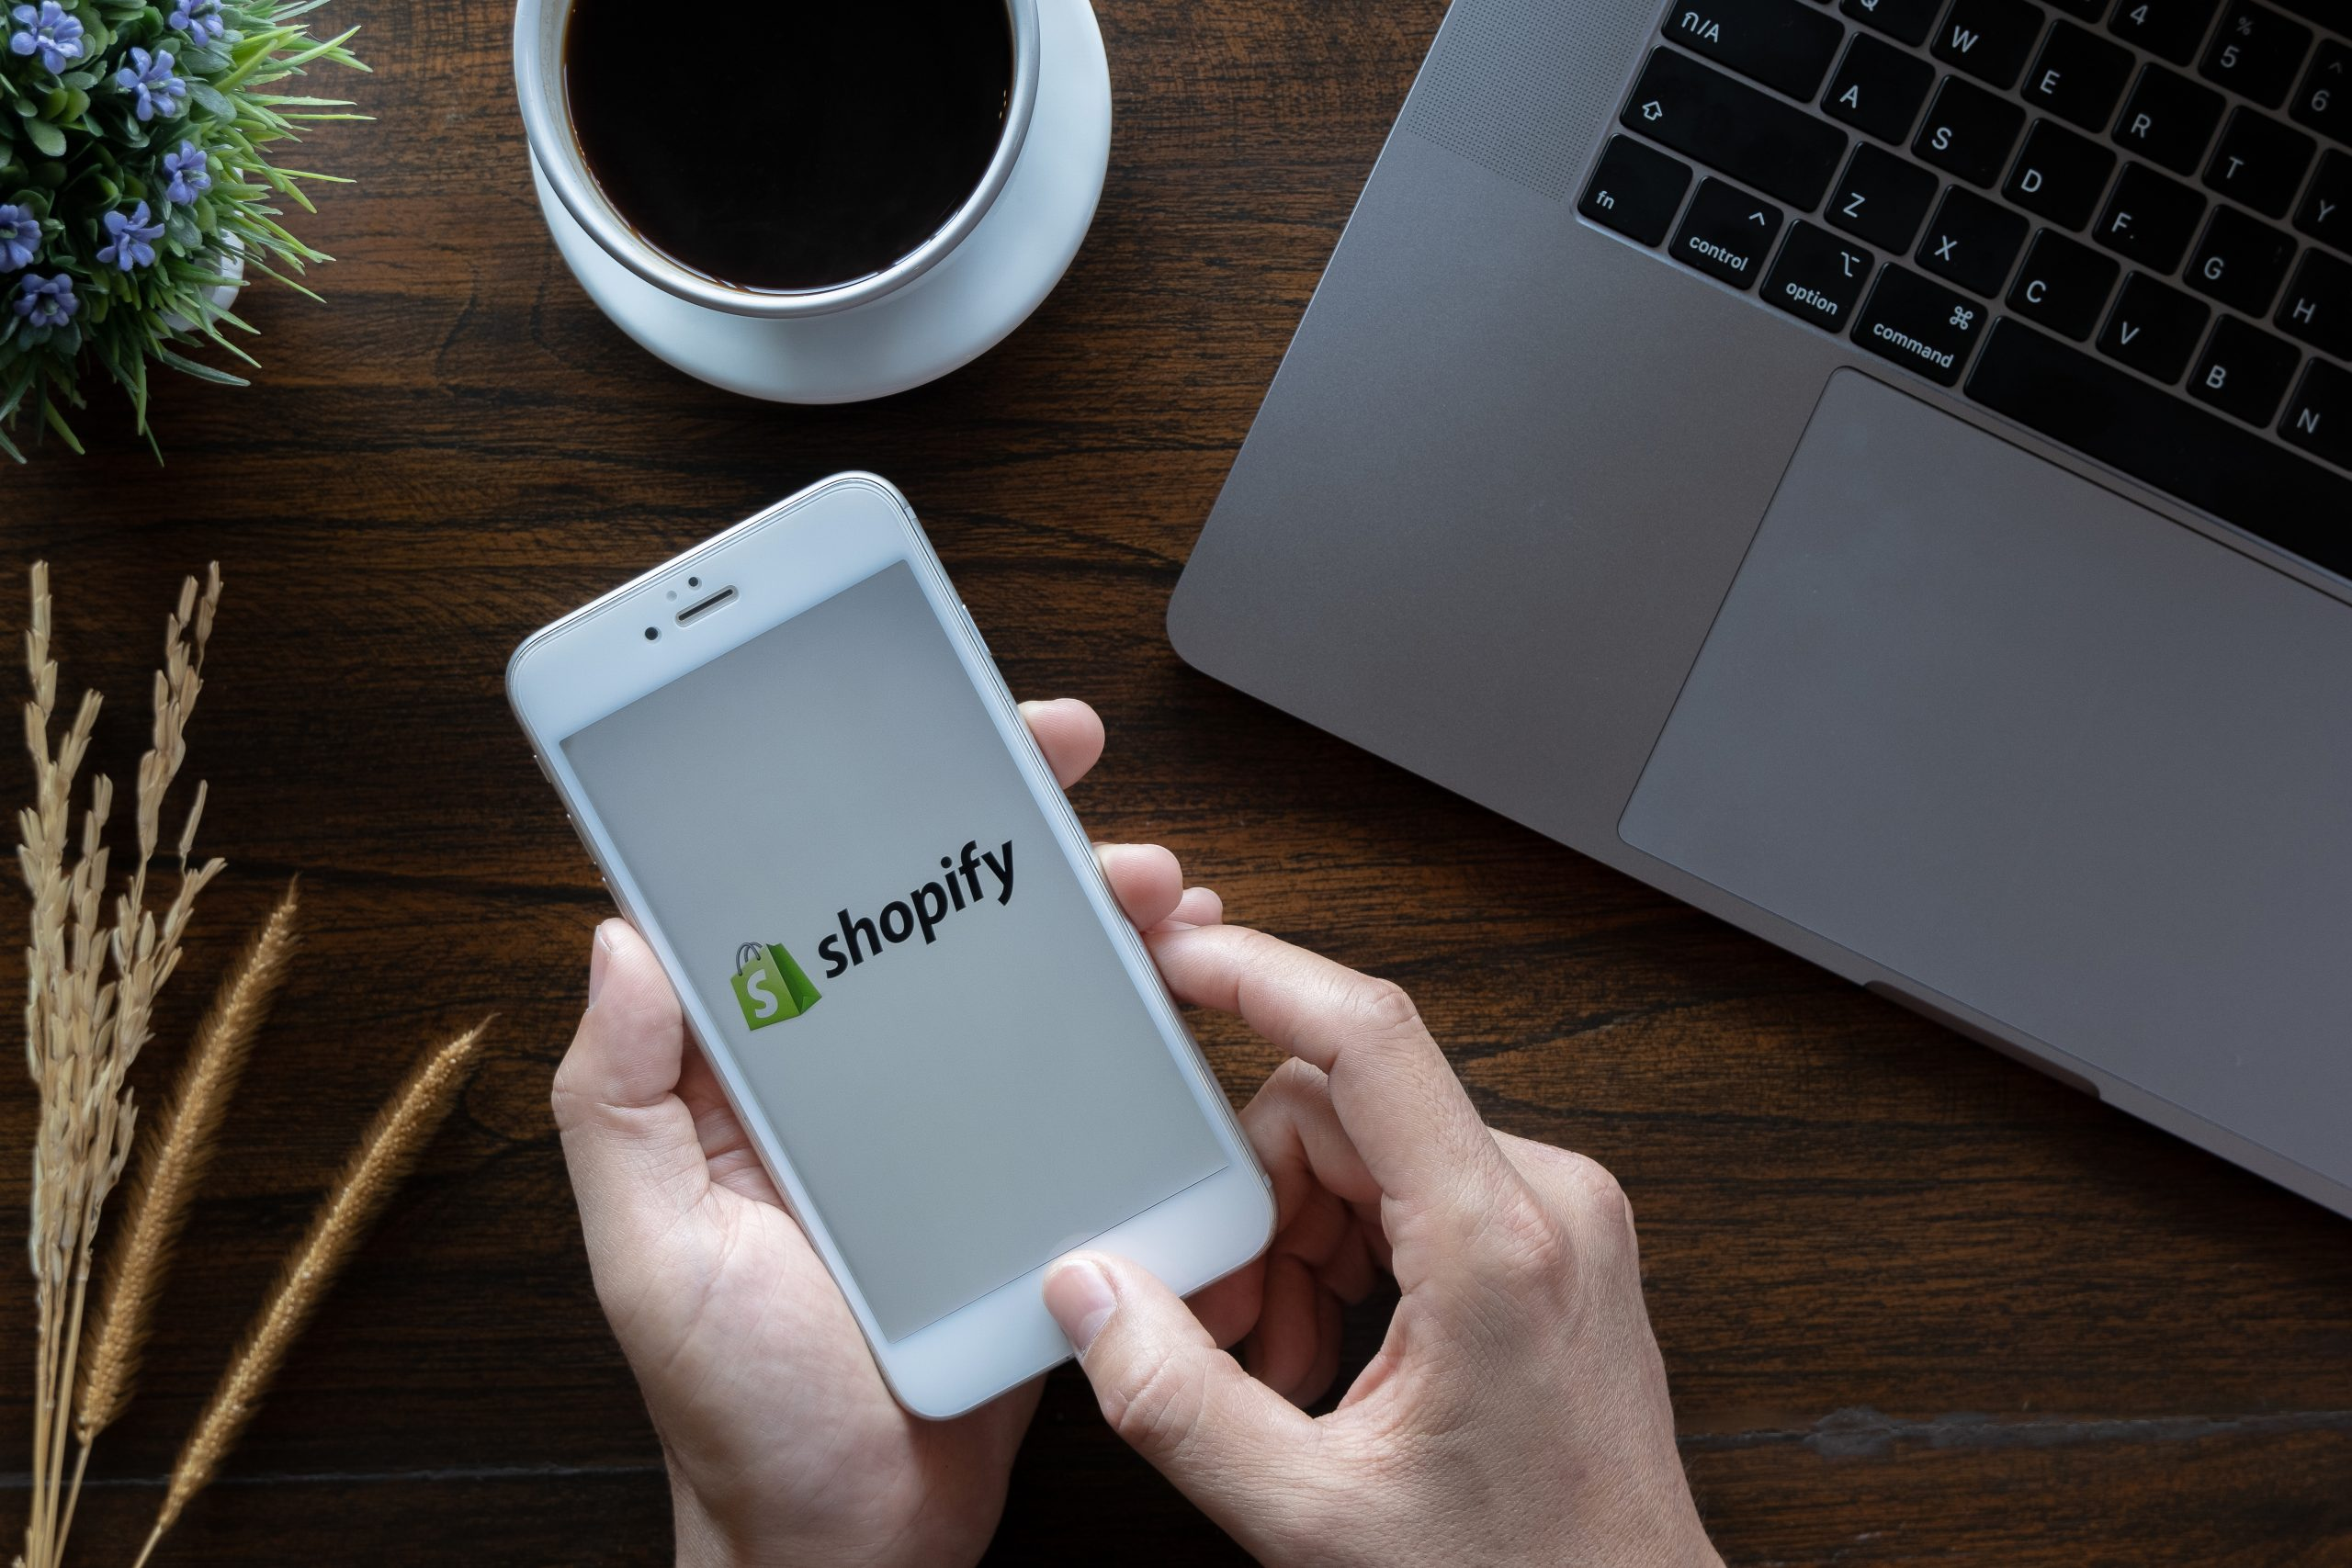 5 Shopify Apps that help increase checkouts